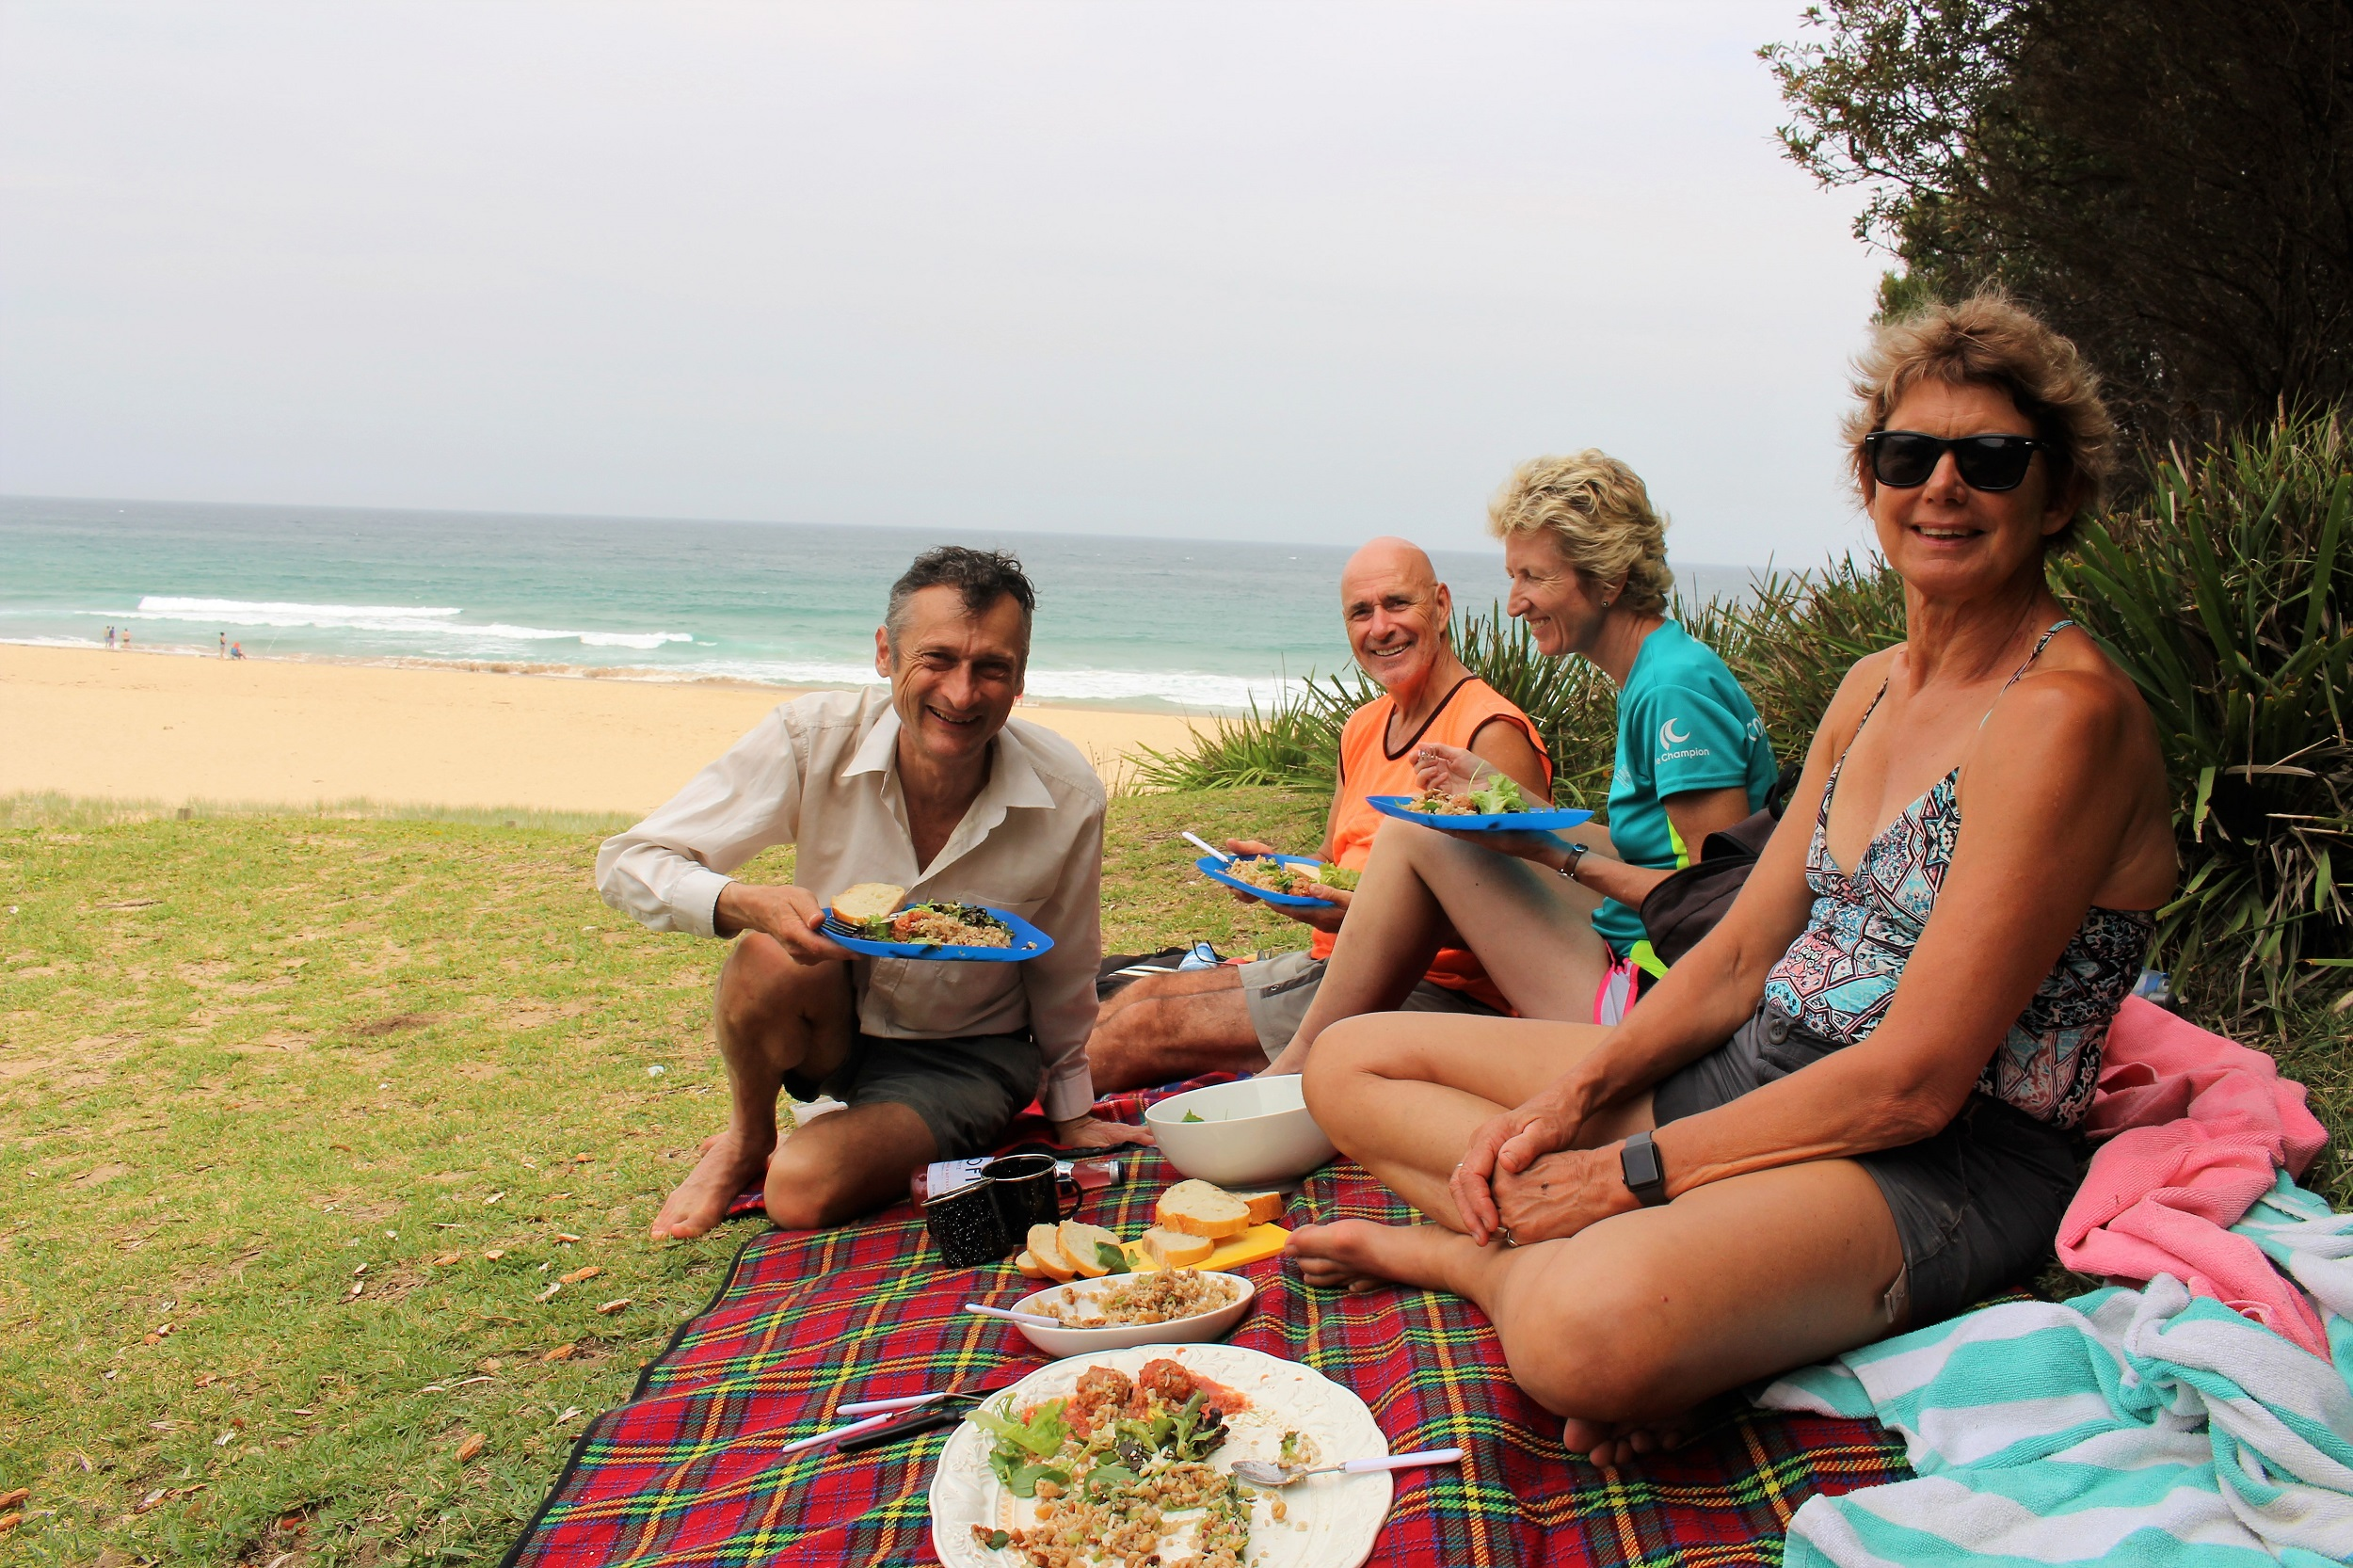 Smiles all round for a picnic lunch of rice salad, meatballs, rocket, avocado and chicken salad and fresh Italian bread